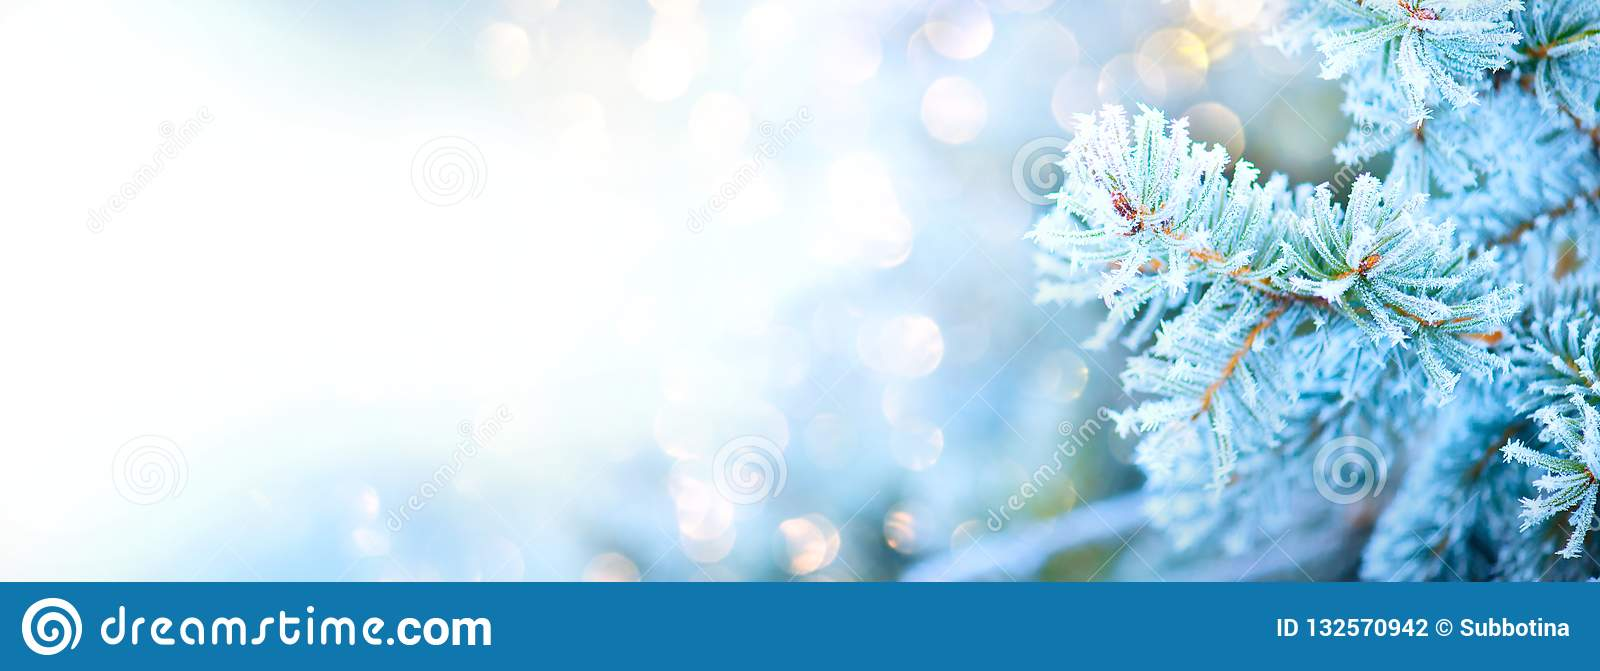 Winter tree holiday snow background. Blue spruce, Christmas and New Year tree border art design, abstract blue backdrop